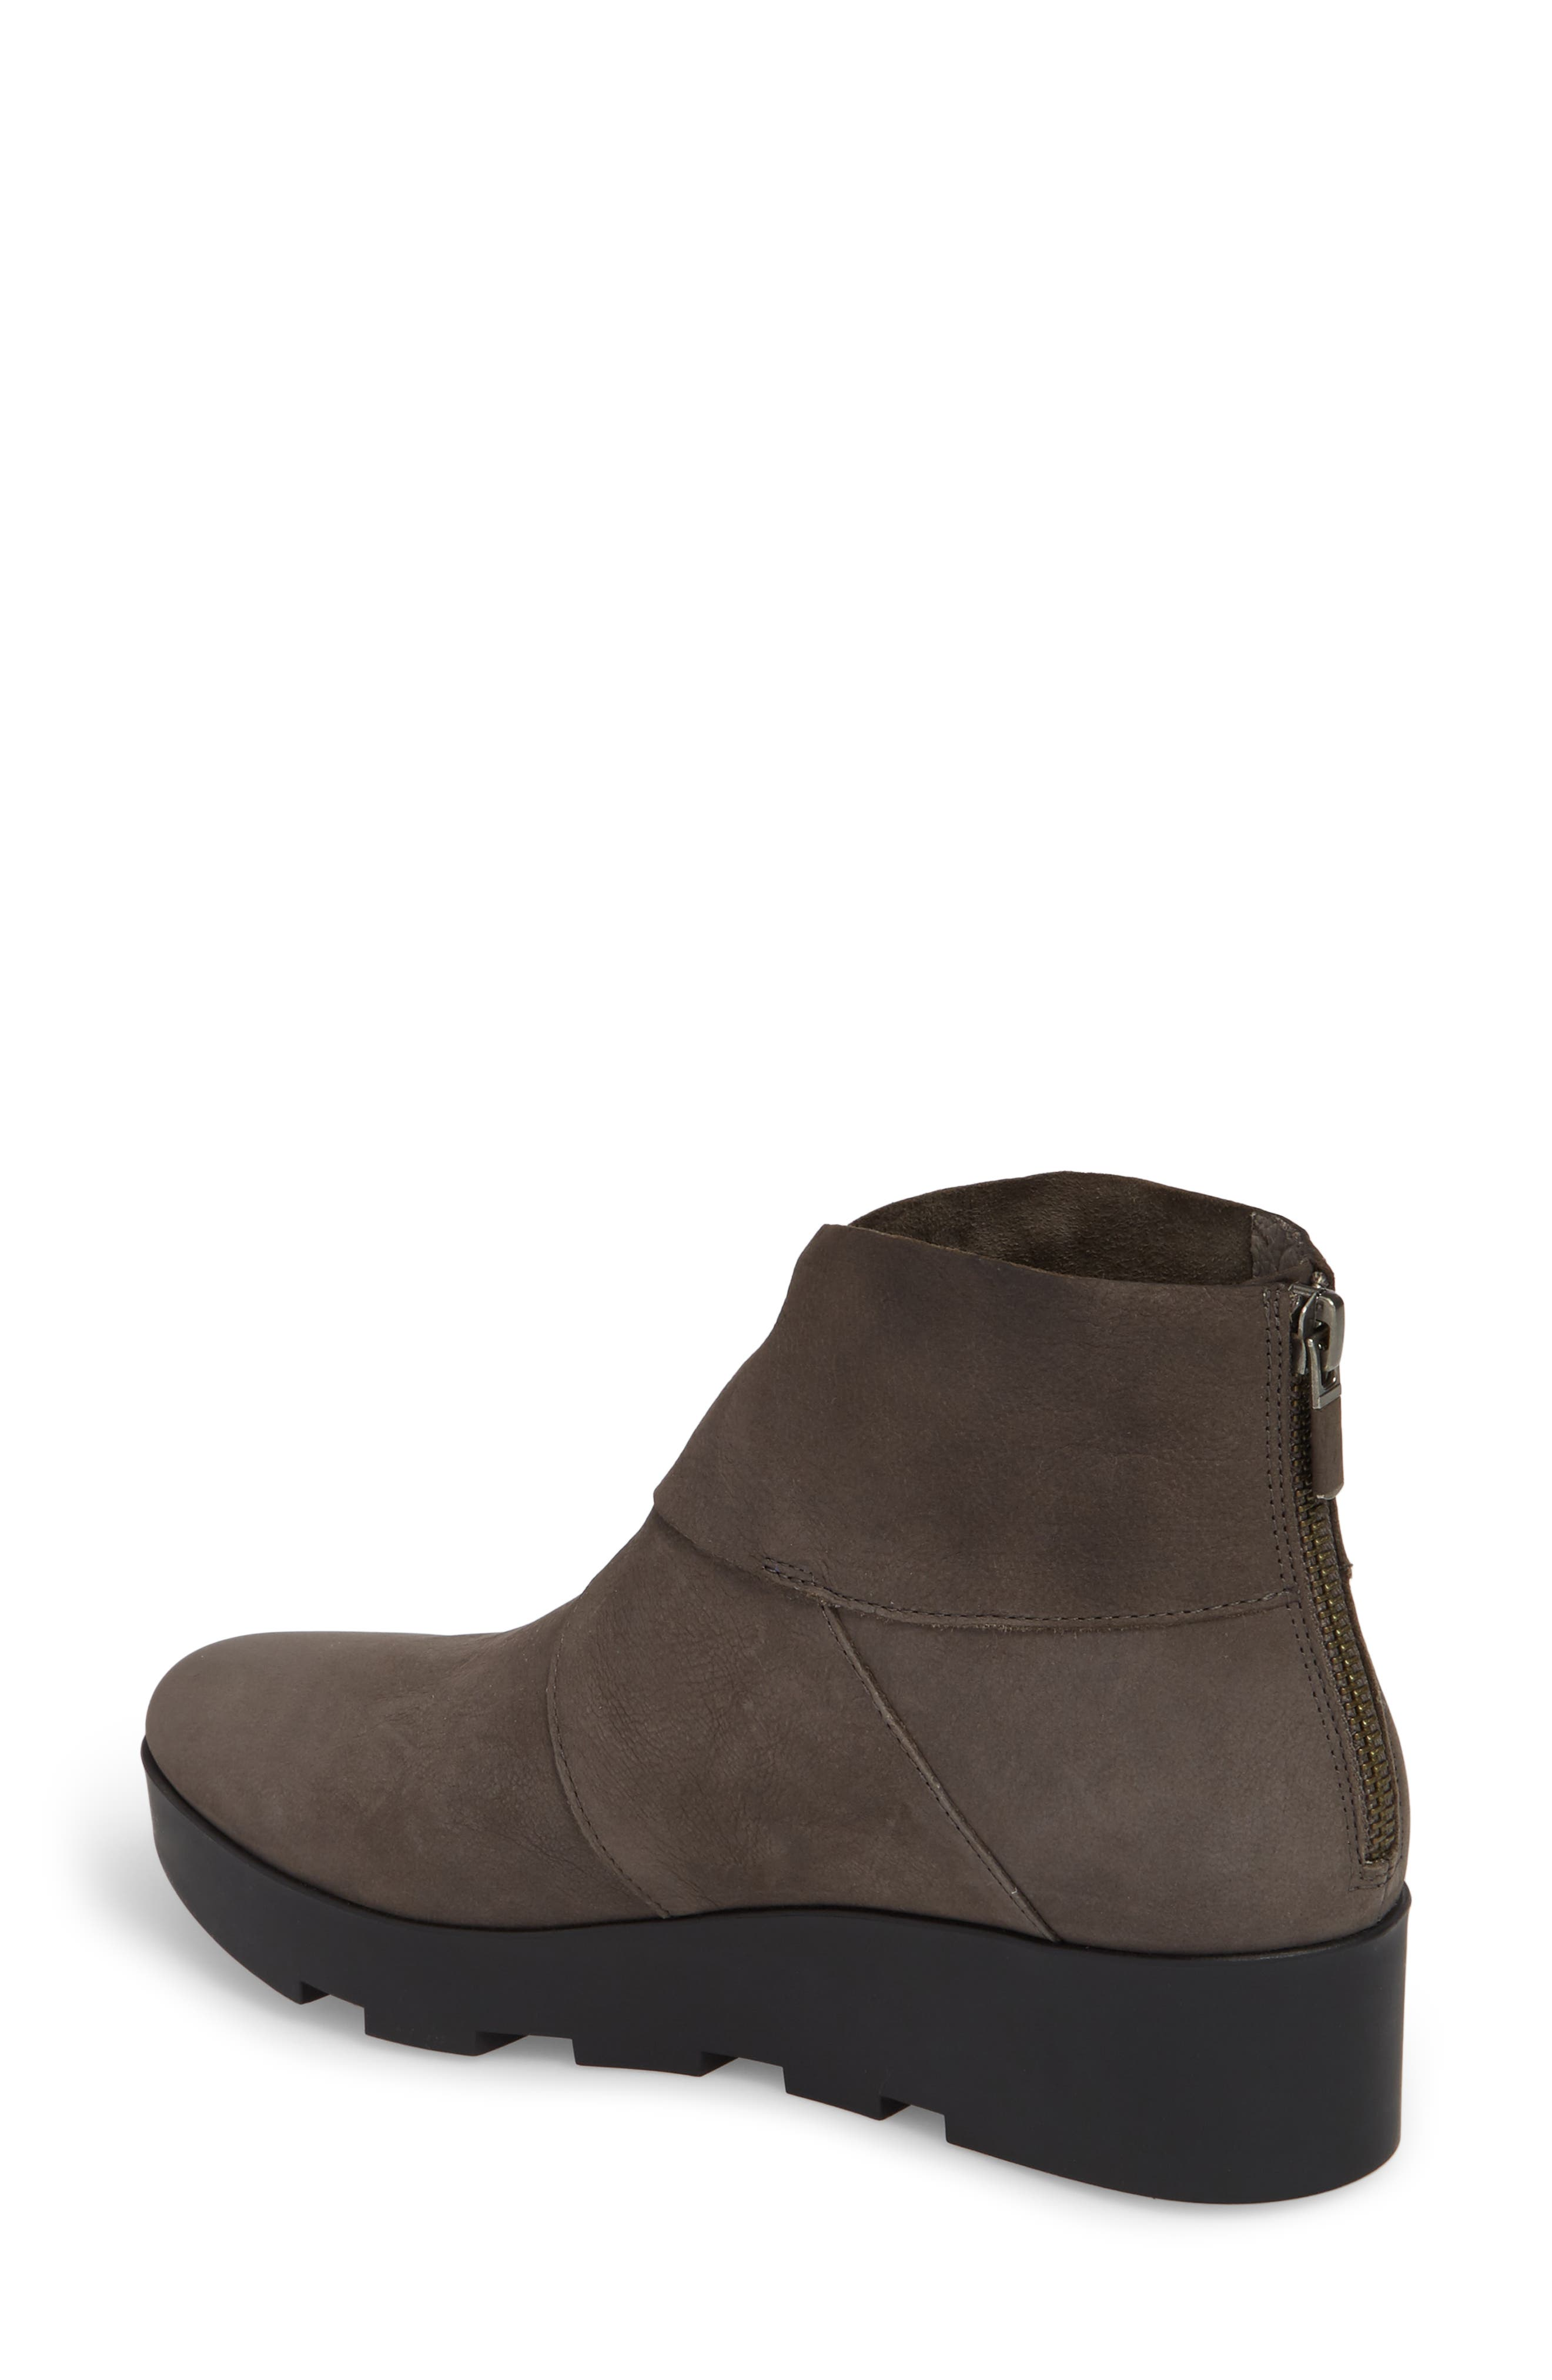 Tread Wedge Bootie,                             Alternate thumbnail 2, color,                             Graphite Nubuck